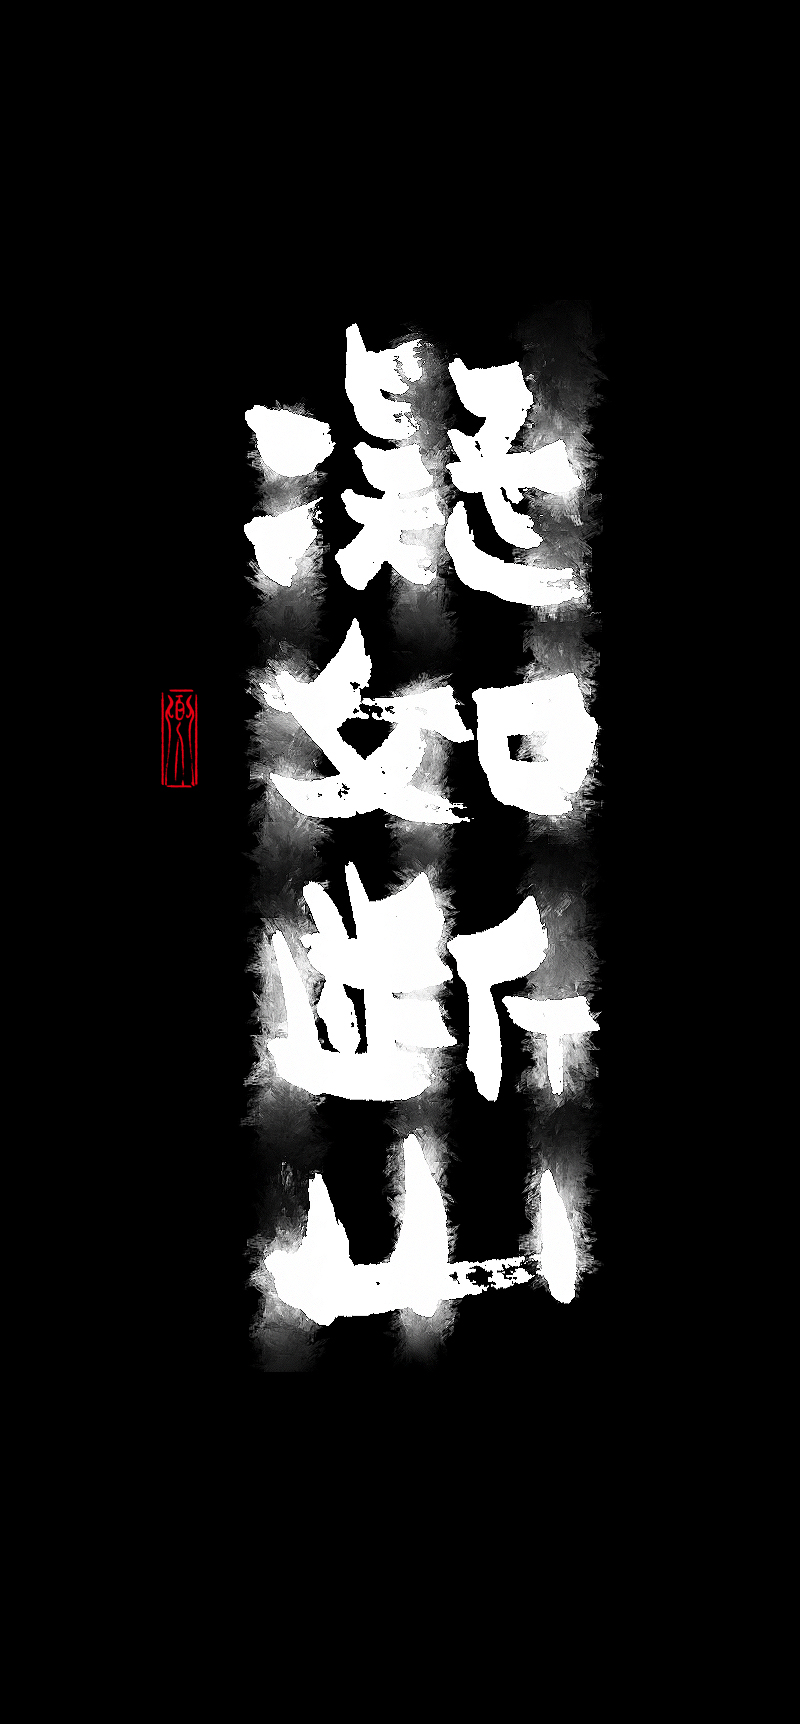 chinesefontdesign.com 2016 12 02 19 49 18 24P Infinite charm of the Chinese calligraphy font